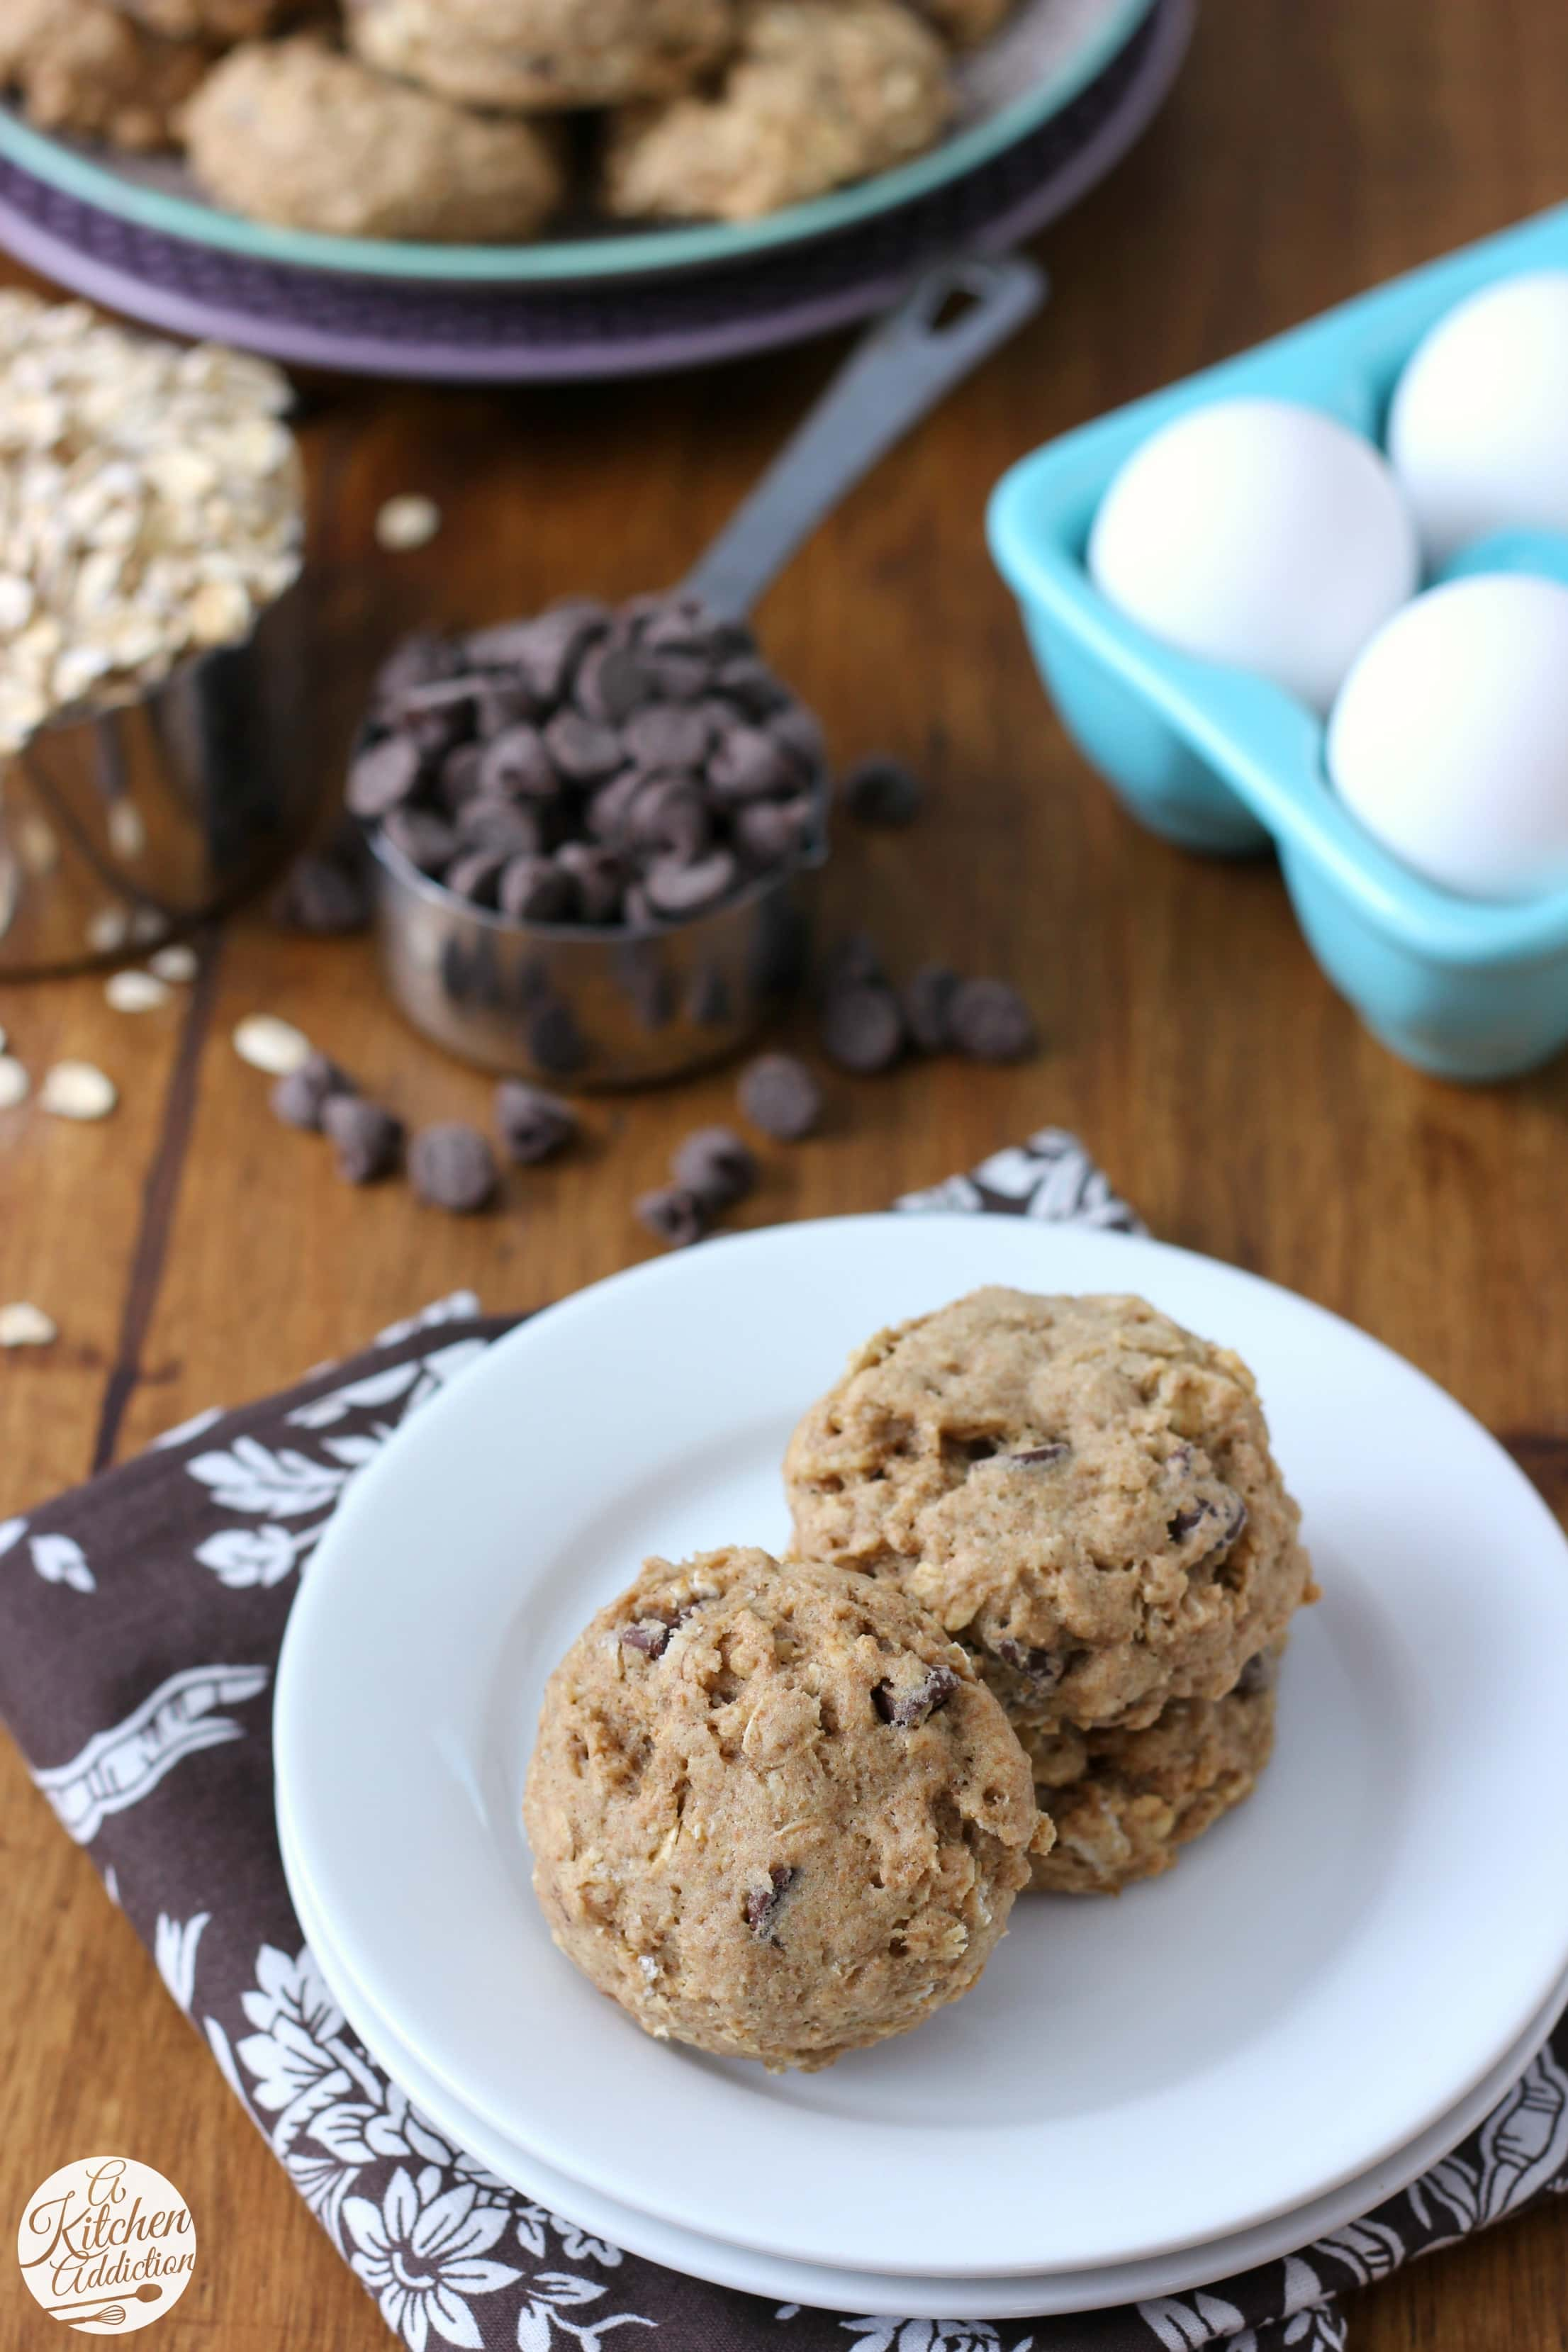 Easy Coconut Oil Chocolate Chip Oat Cookies Recipe from A Kitchen Addiction